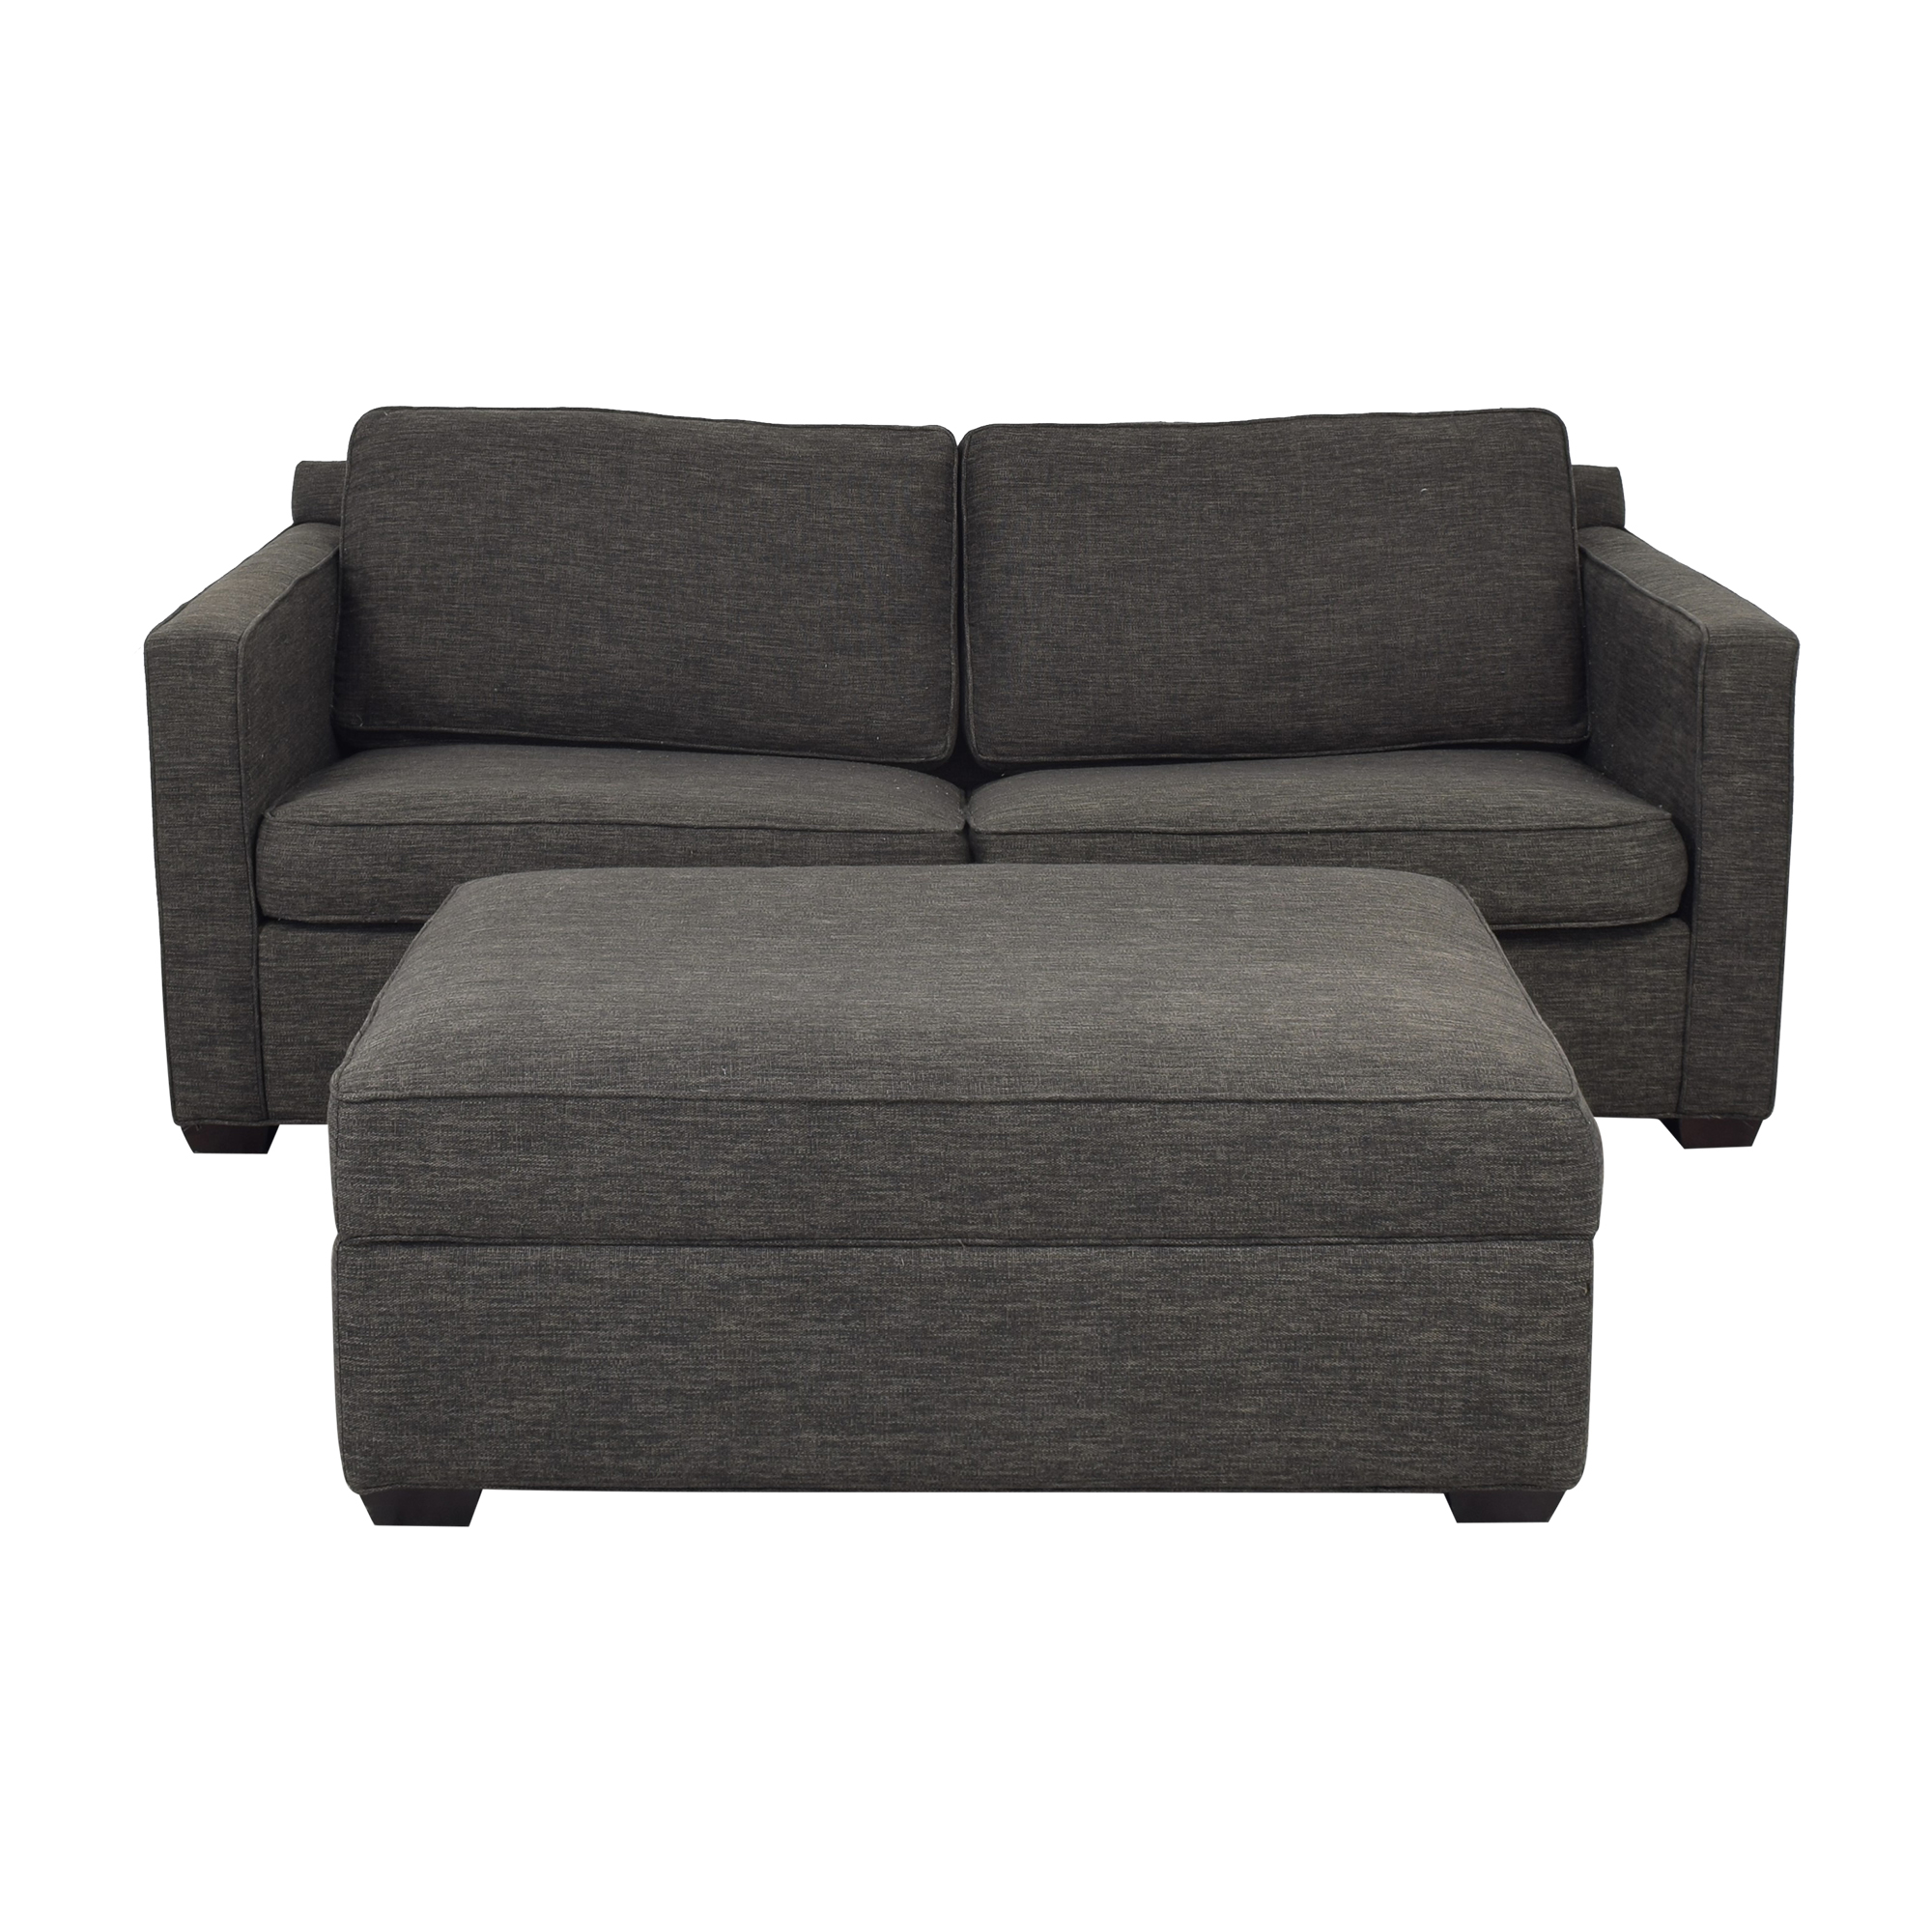 Crate & Barrel Crate & Barrel Davis Queen Sleeper Sofa and Storage Ottoman